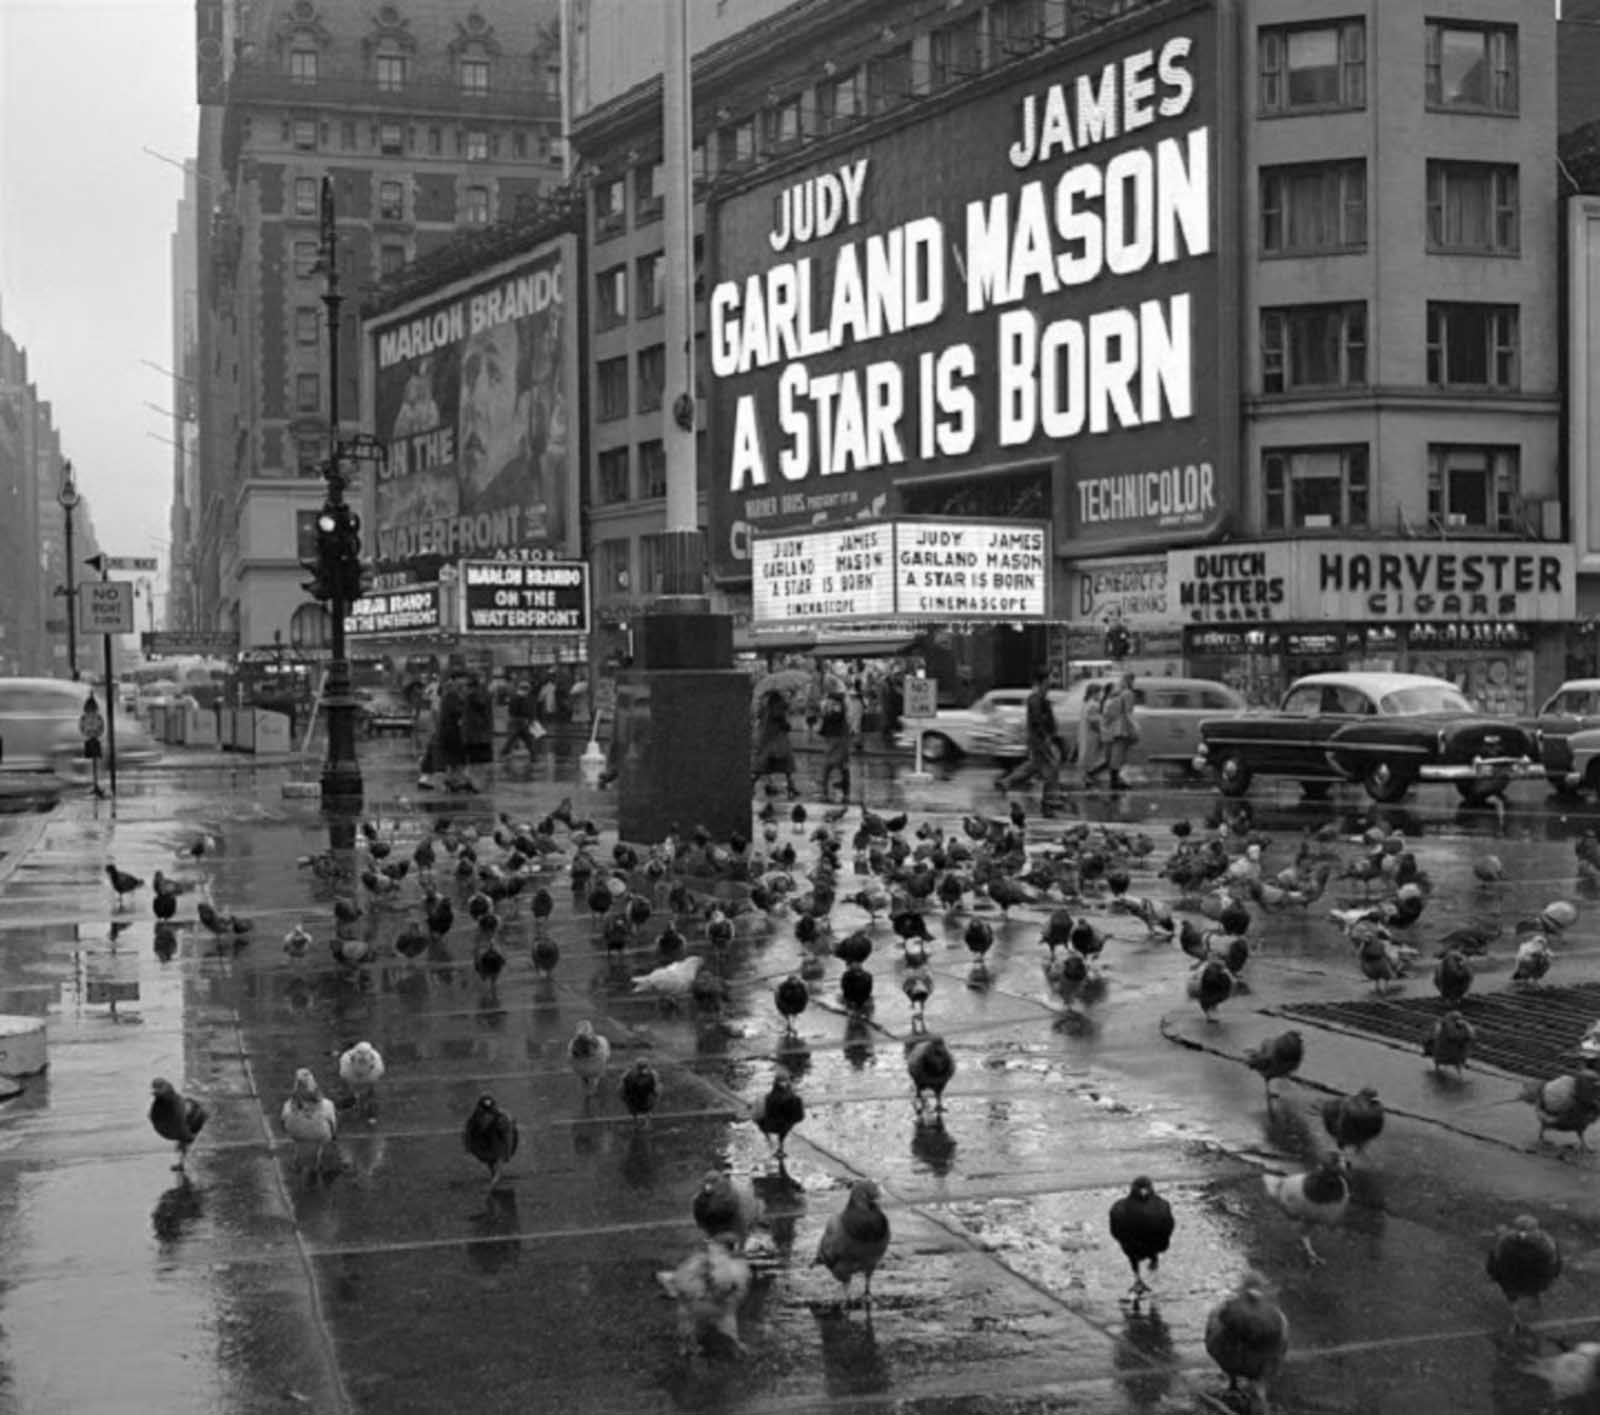 Pigeons gather in Times Square on a rainy day in 1954 in front of the marquee for